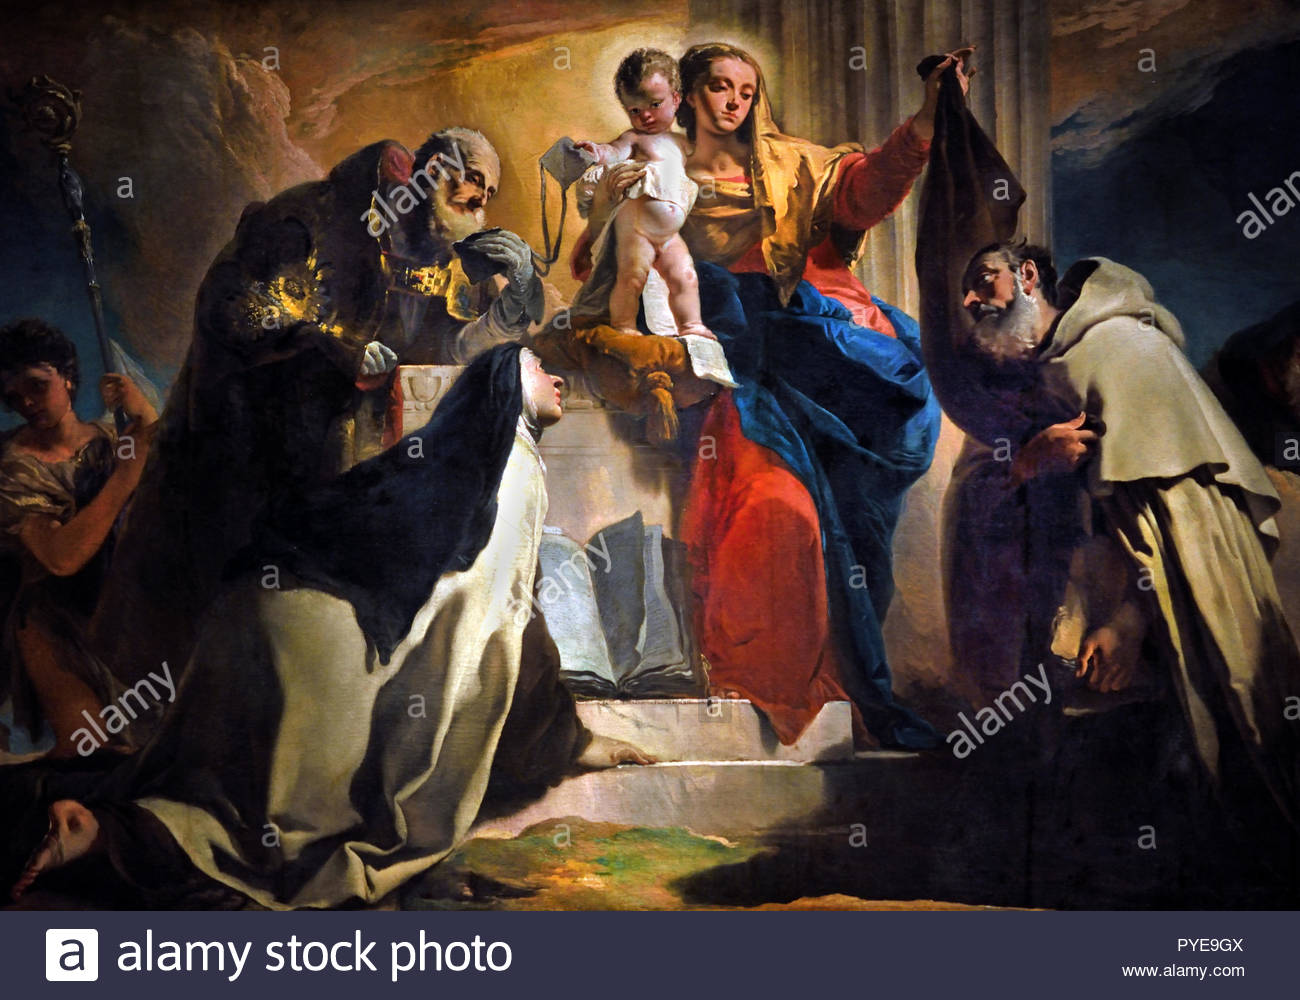 Our Lady of Mount Carmel with St. Simon Stock, St.Teresa of Avila, St. Albert of Vercelli, the Prophet Elijah and the Souls in Purgatory 1745 by Giovanni Battista Tiepolo 18th Century, Italy, Italian.(Detail) - Stock Image